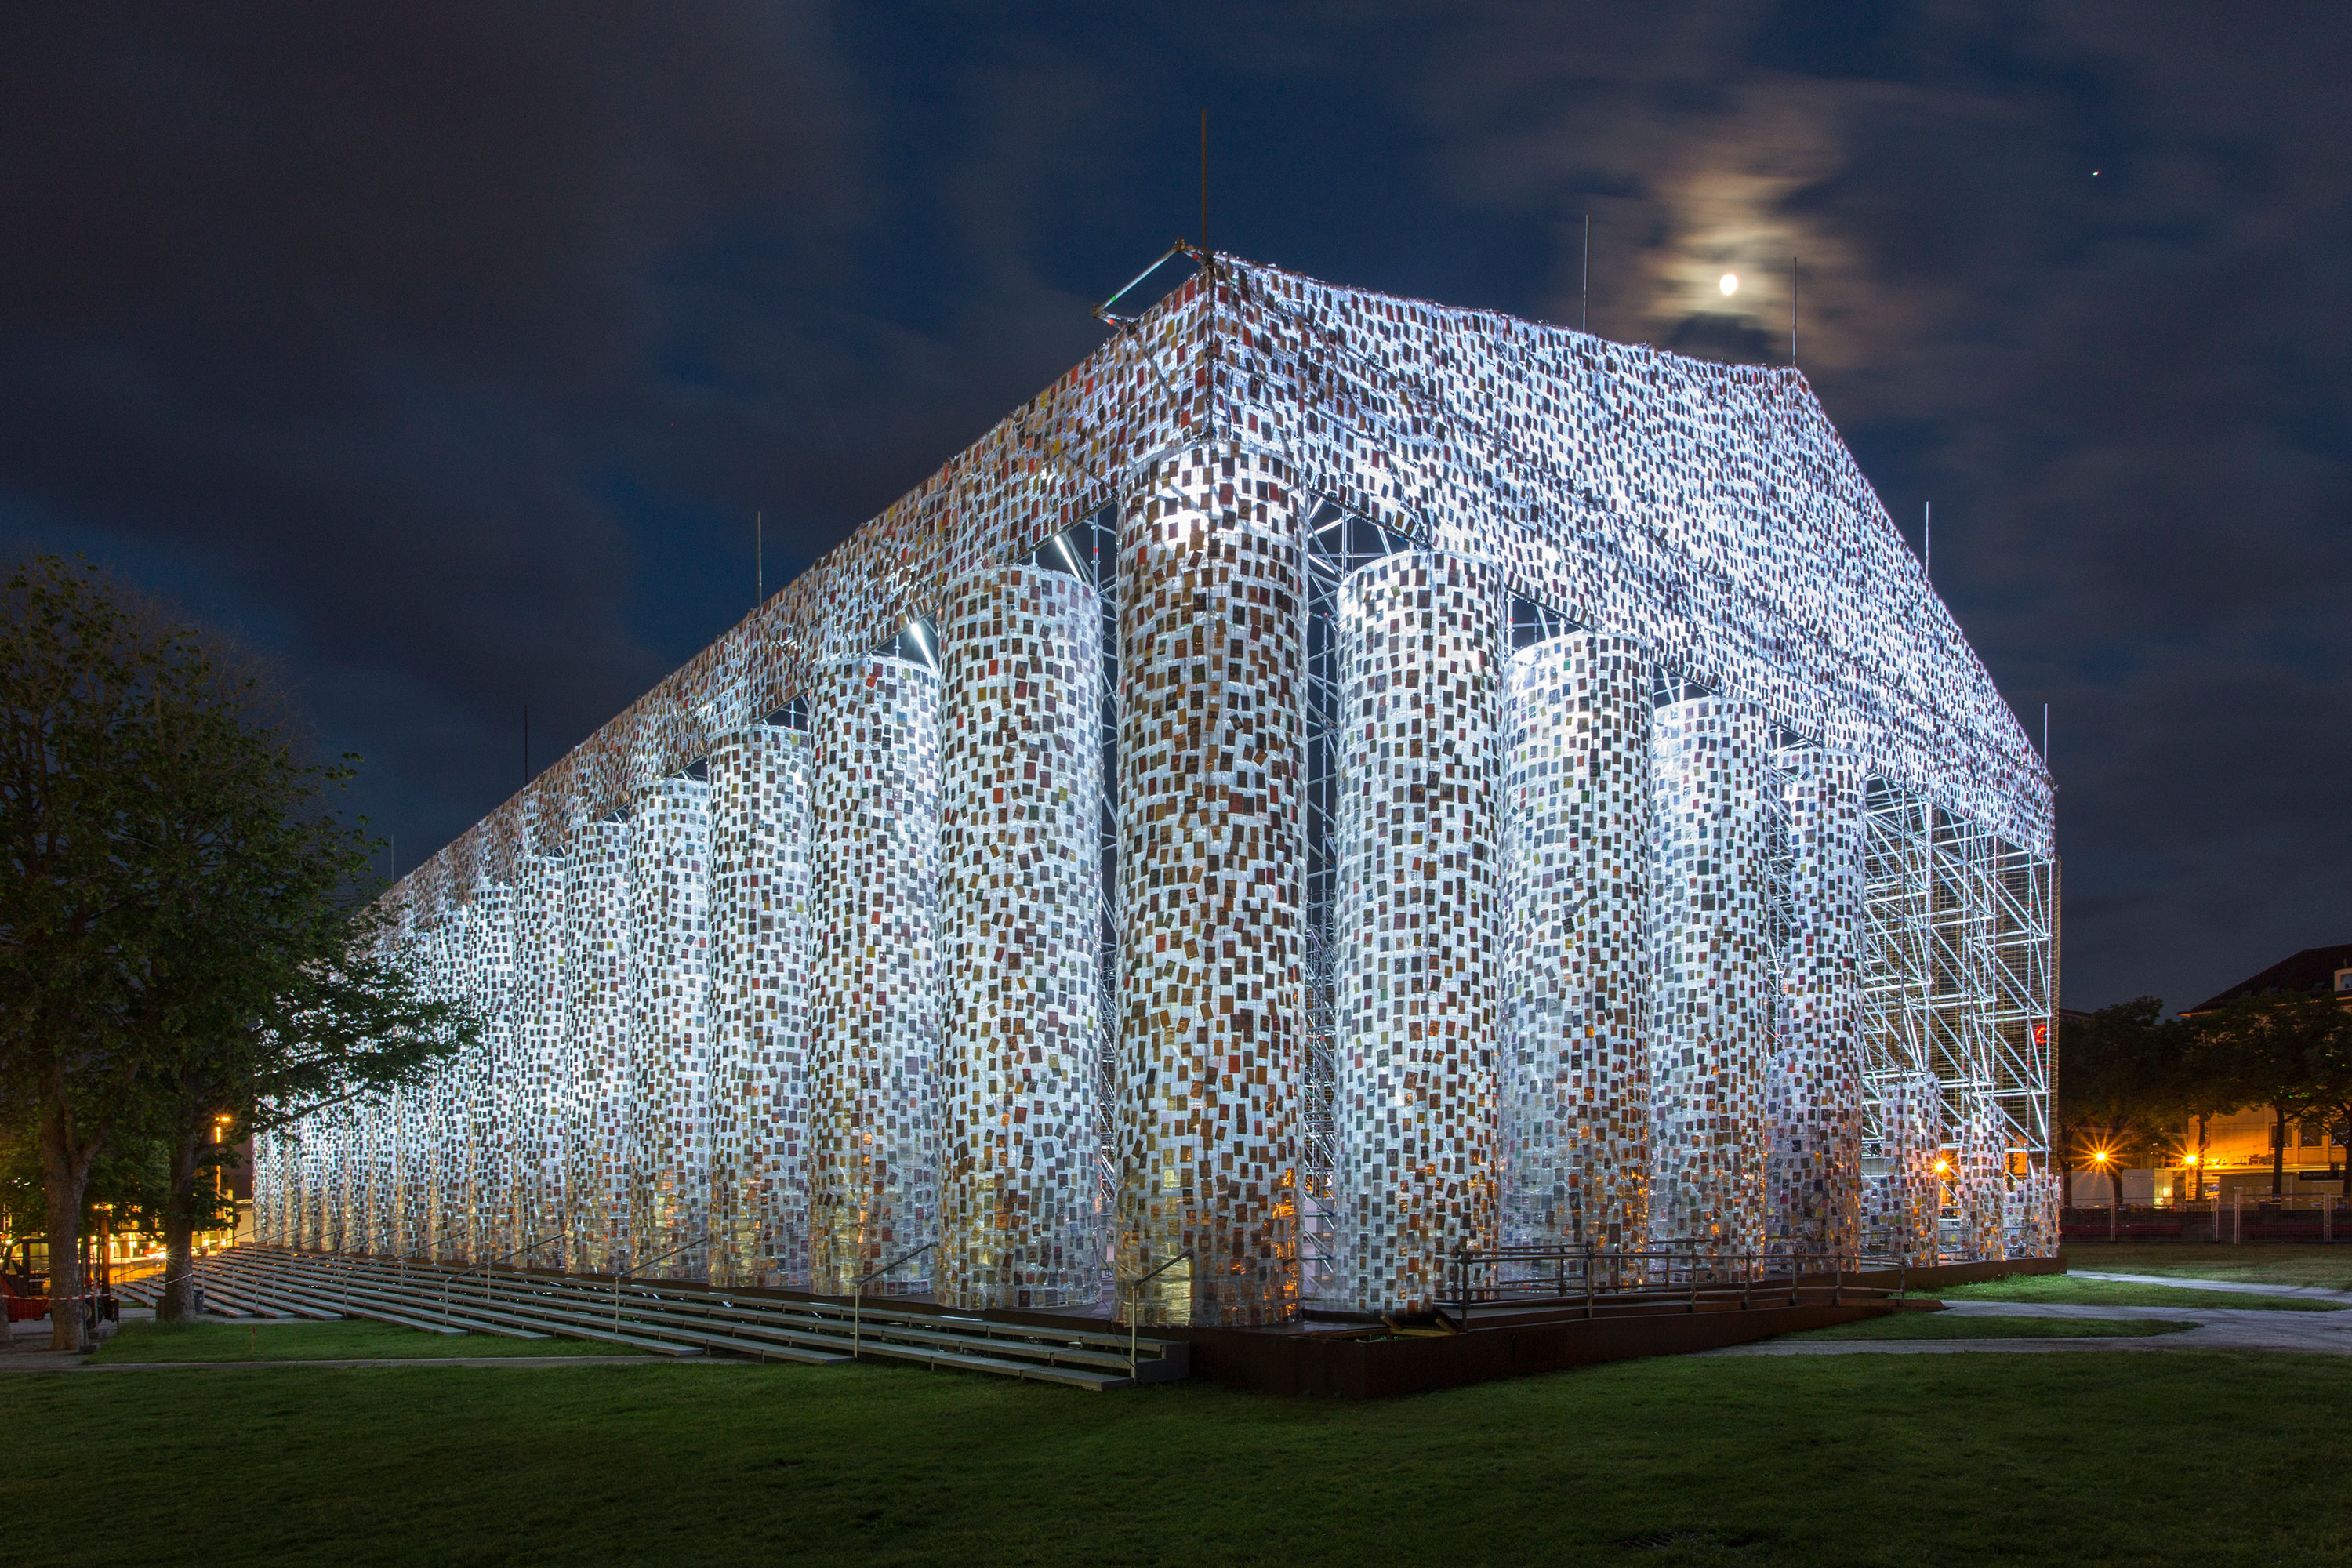 Marta Minujín, <em>The Parthenon of Books</em>, 2017. Steel, books, and plastic sheeting, Friedrichsplatz, Kassel. Photo: Roman März